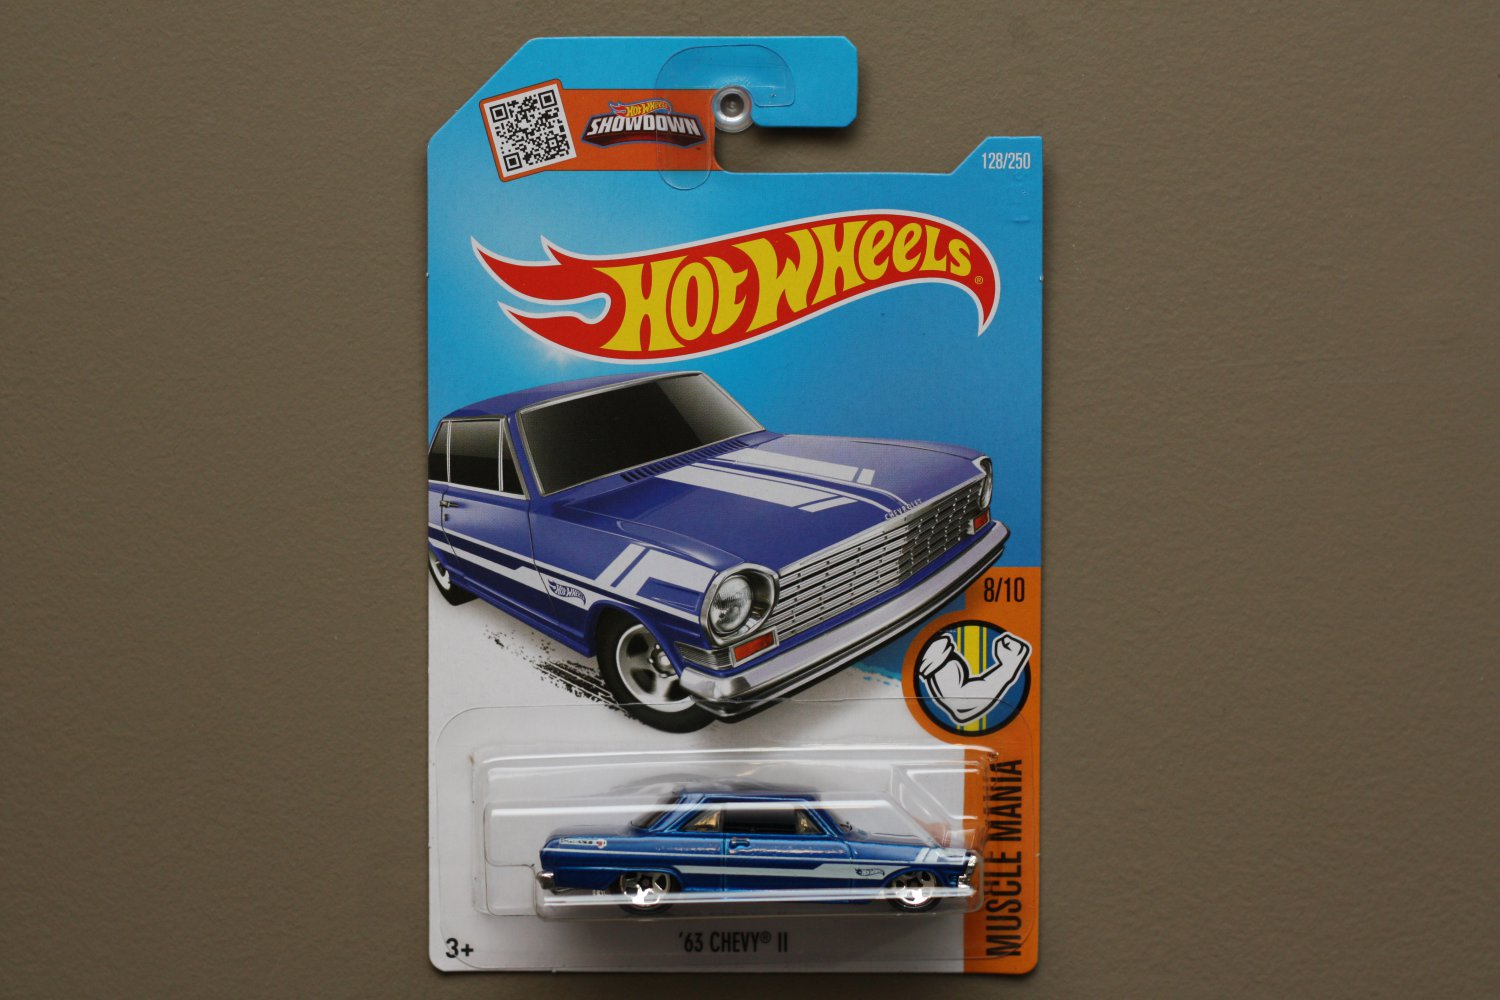 Hot wheels 2016 muscle mania 39 63 chevy ii blue for 9 salon hot wheels 2016